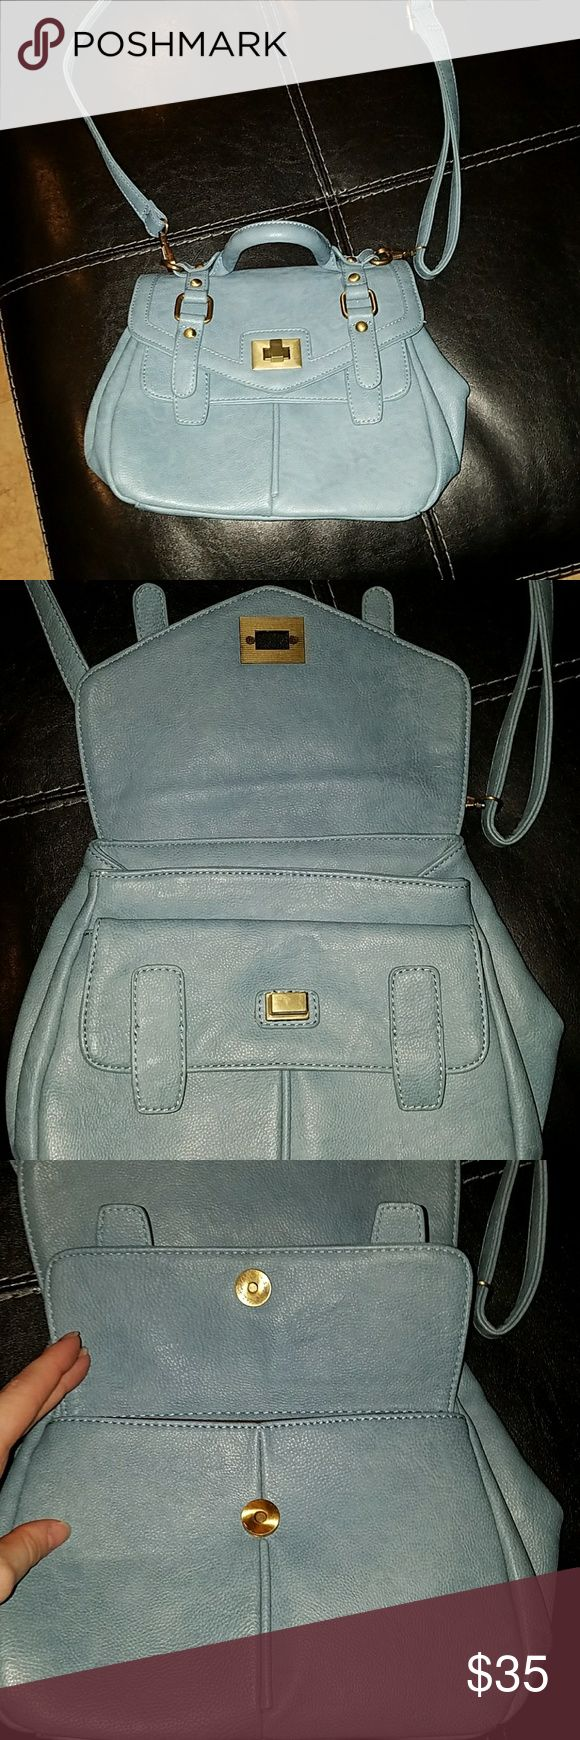 Light blue satchel/crossbody purse Very cute light blue satchel purse. I do not know the brand but I bought this in Hong Kong at the Victoria Falls Mall. Has a front and back compartment and then two compartments in the middle with 2 zipper spaces and sleeve spaces. Attachable long strap as well. Bags Satchels